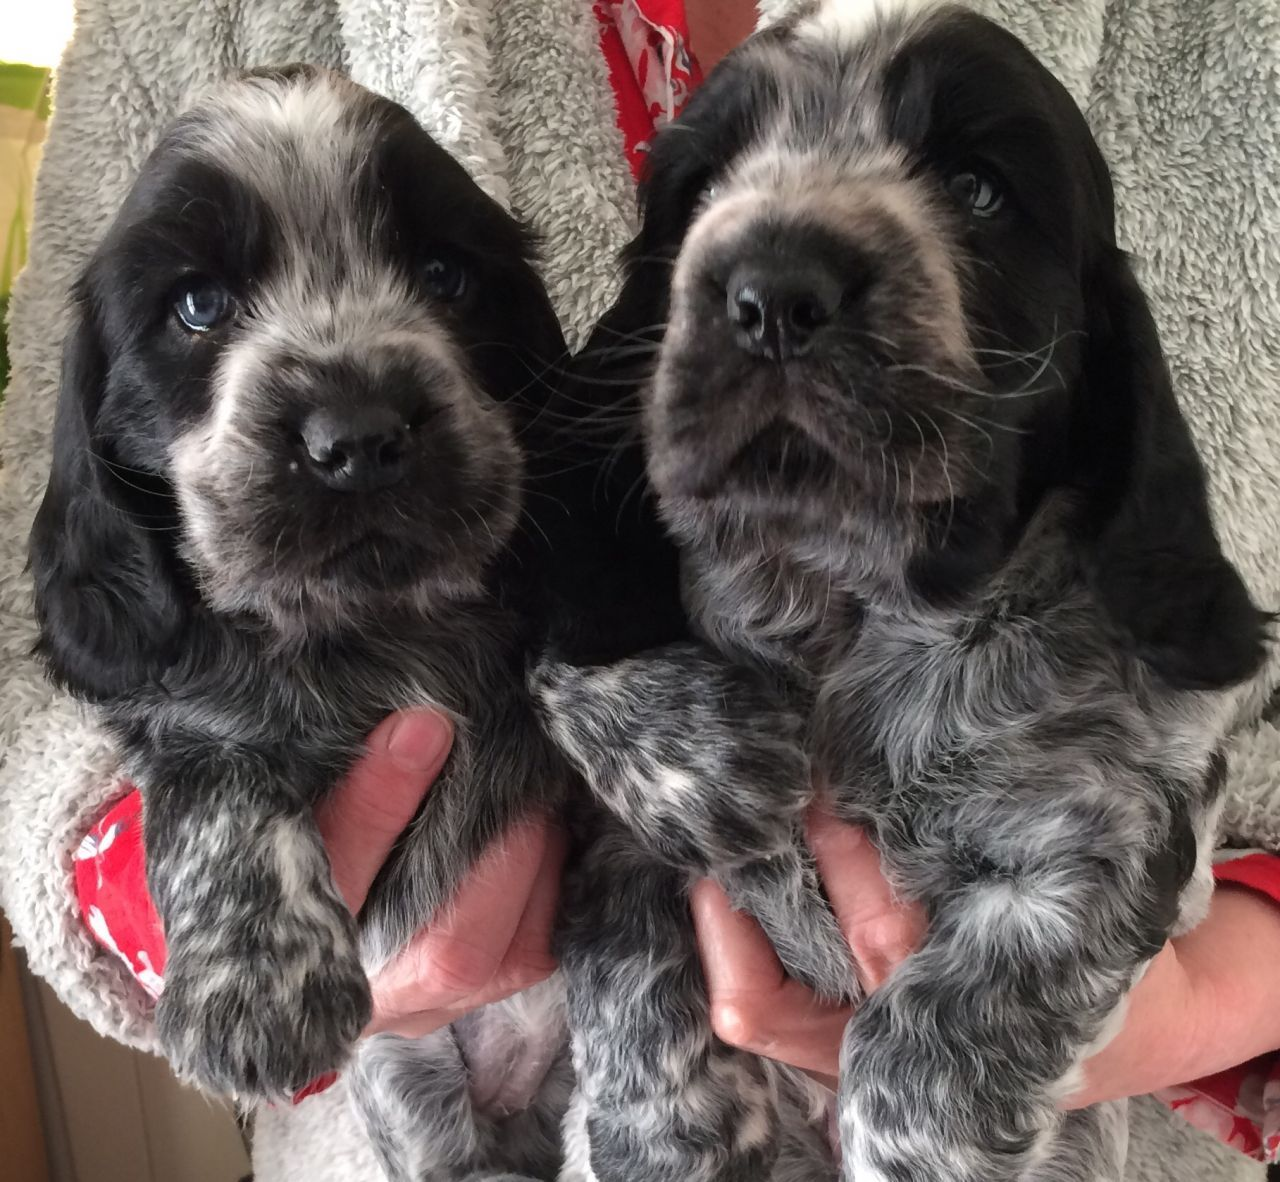 4 lovely cocker spaniel puppies for sale. 2 boys 2 girls